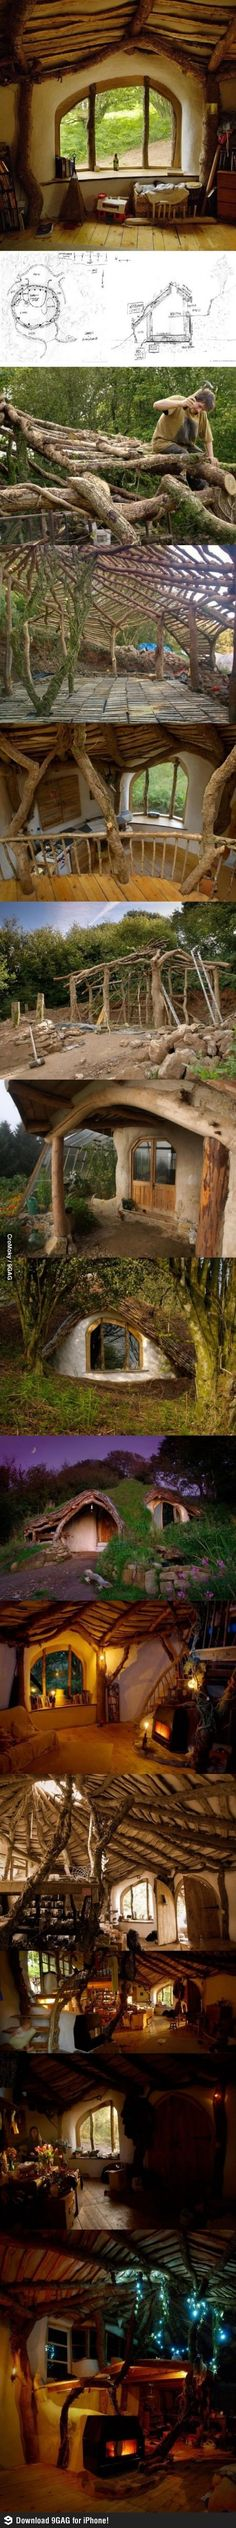 How to build a Hobbit House! - potential Cottage possibilities?  - LD